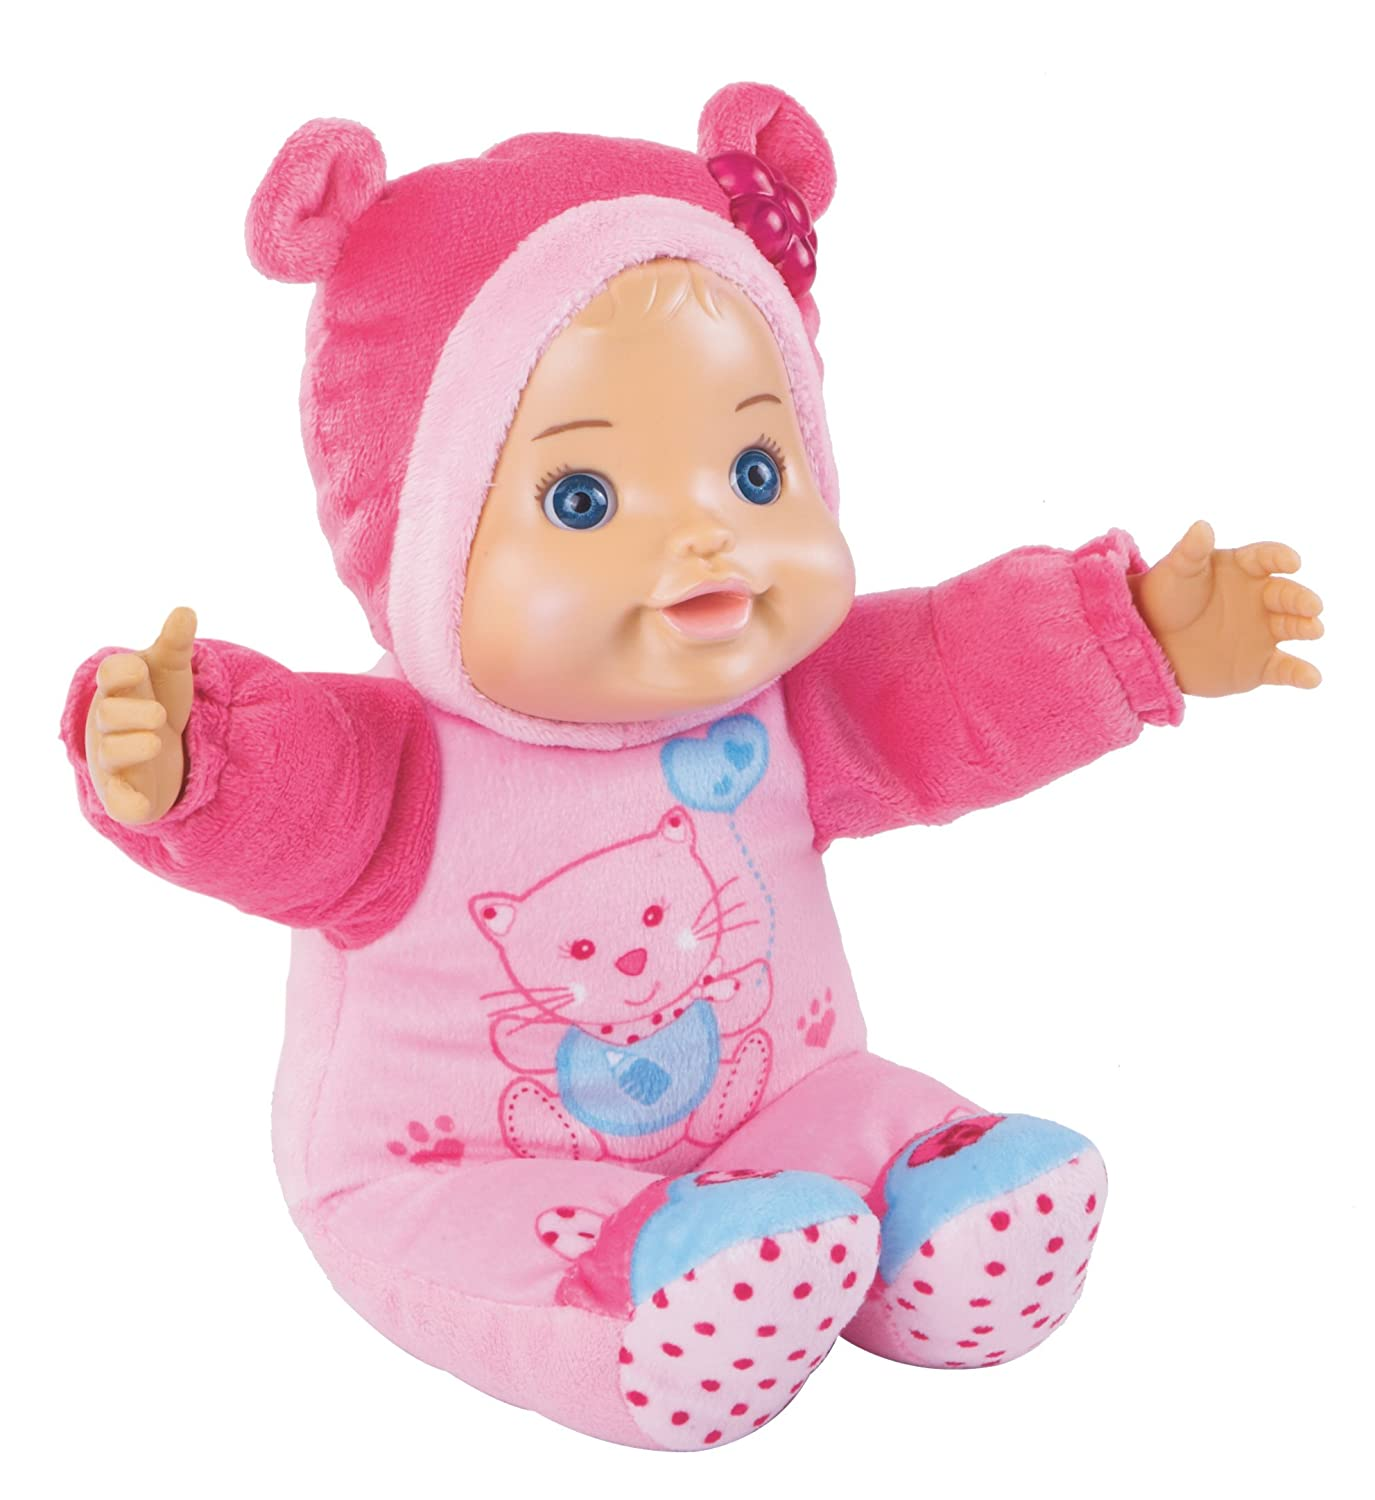 Vtech Little Love Baby Peek a Boo Amazon Toys & Games